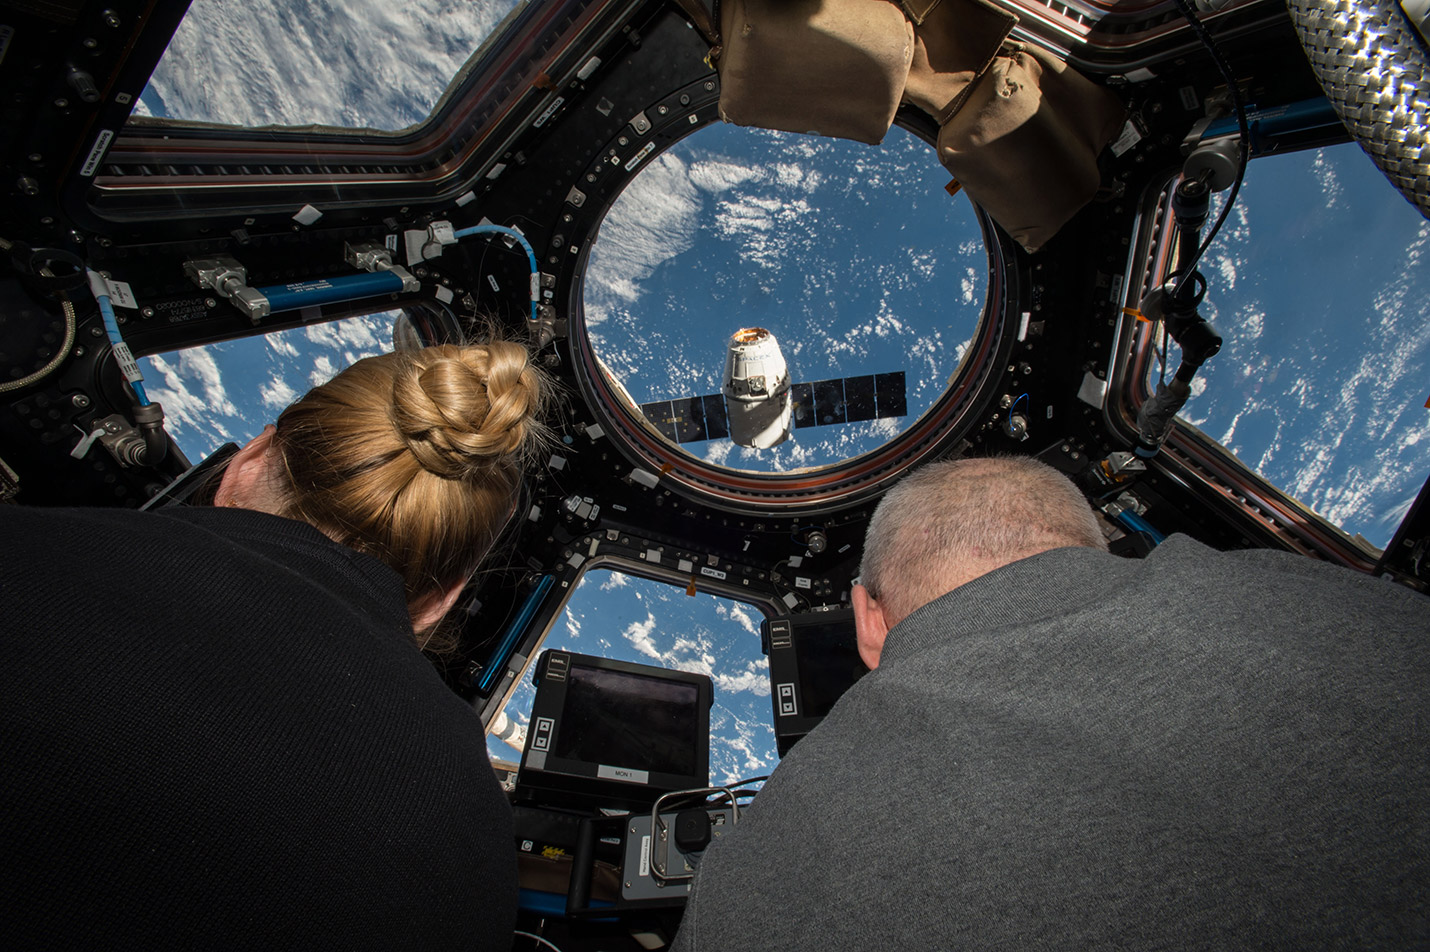 NASA astronauts Kate Rubins and Jeff Williams used the ISS's robotic arm to catch and berth a SpaceX Dragon capsule